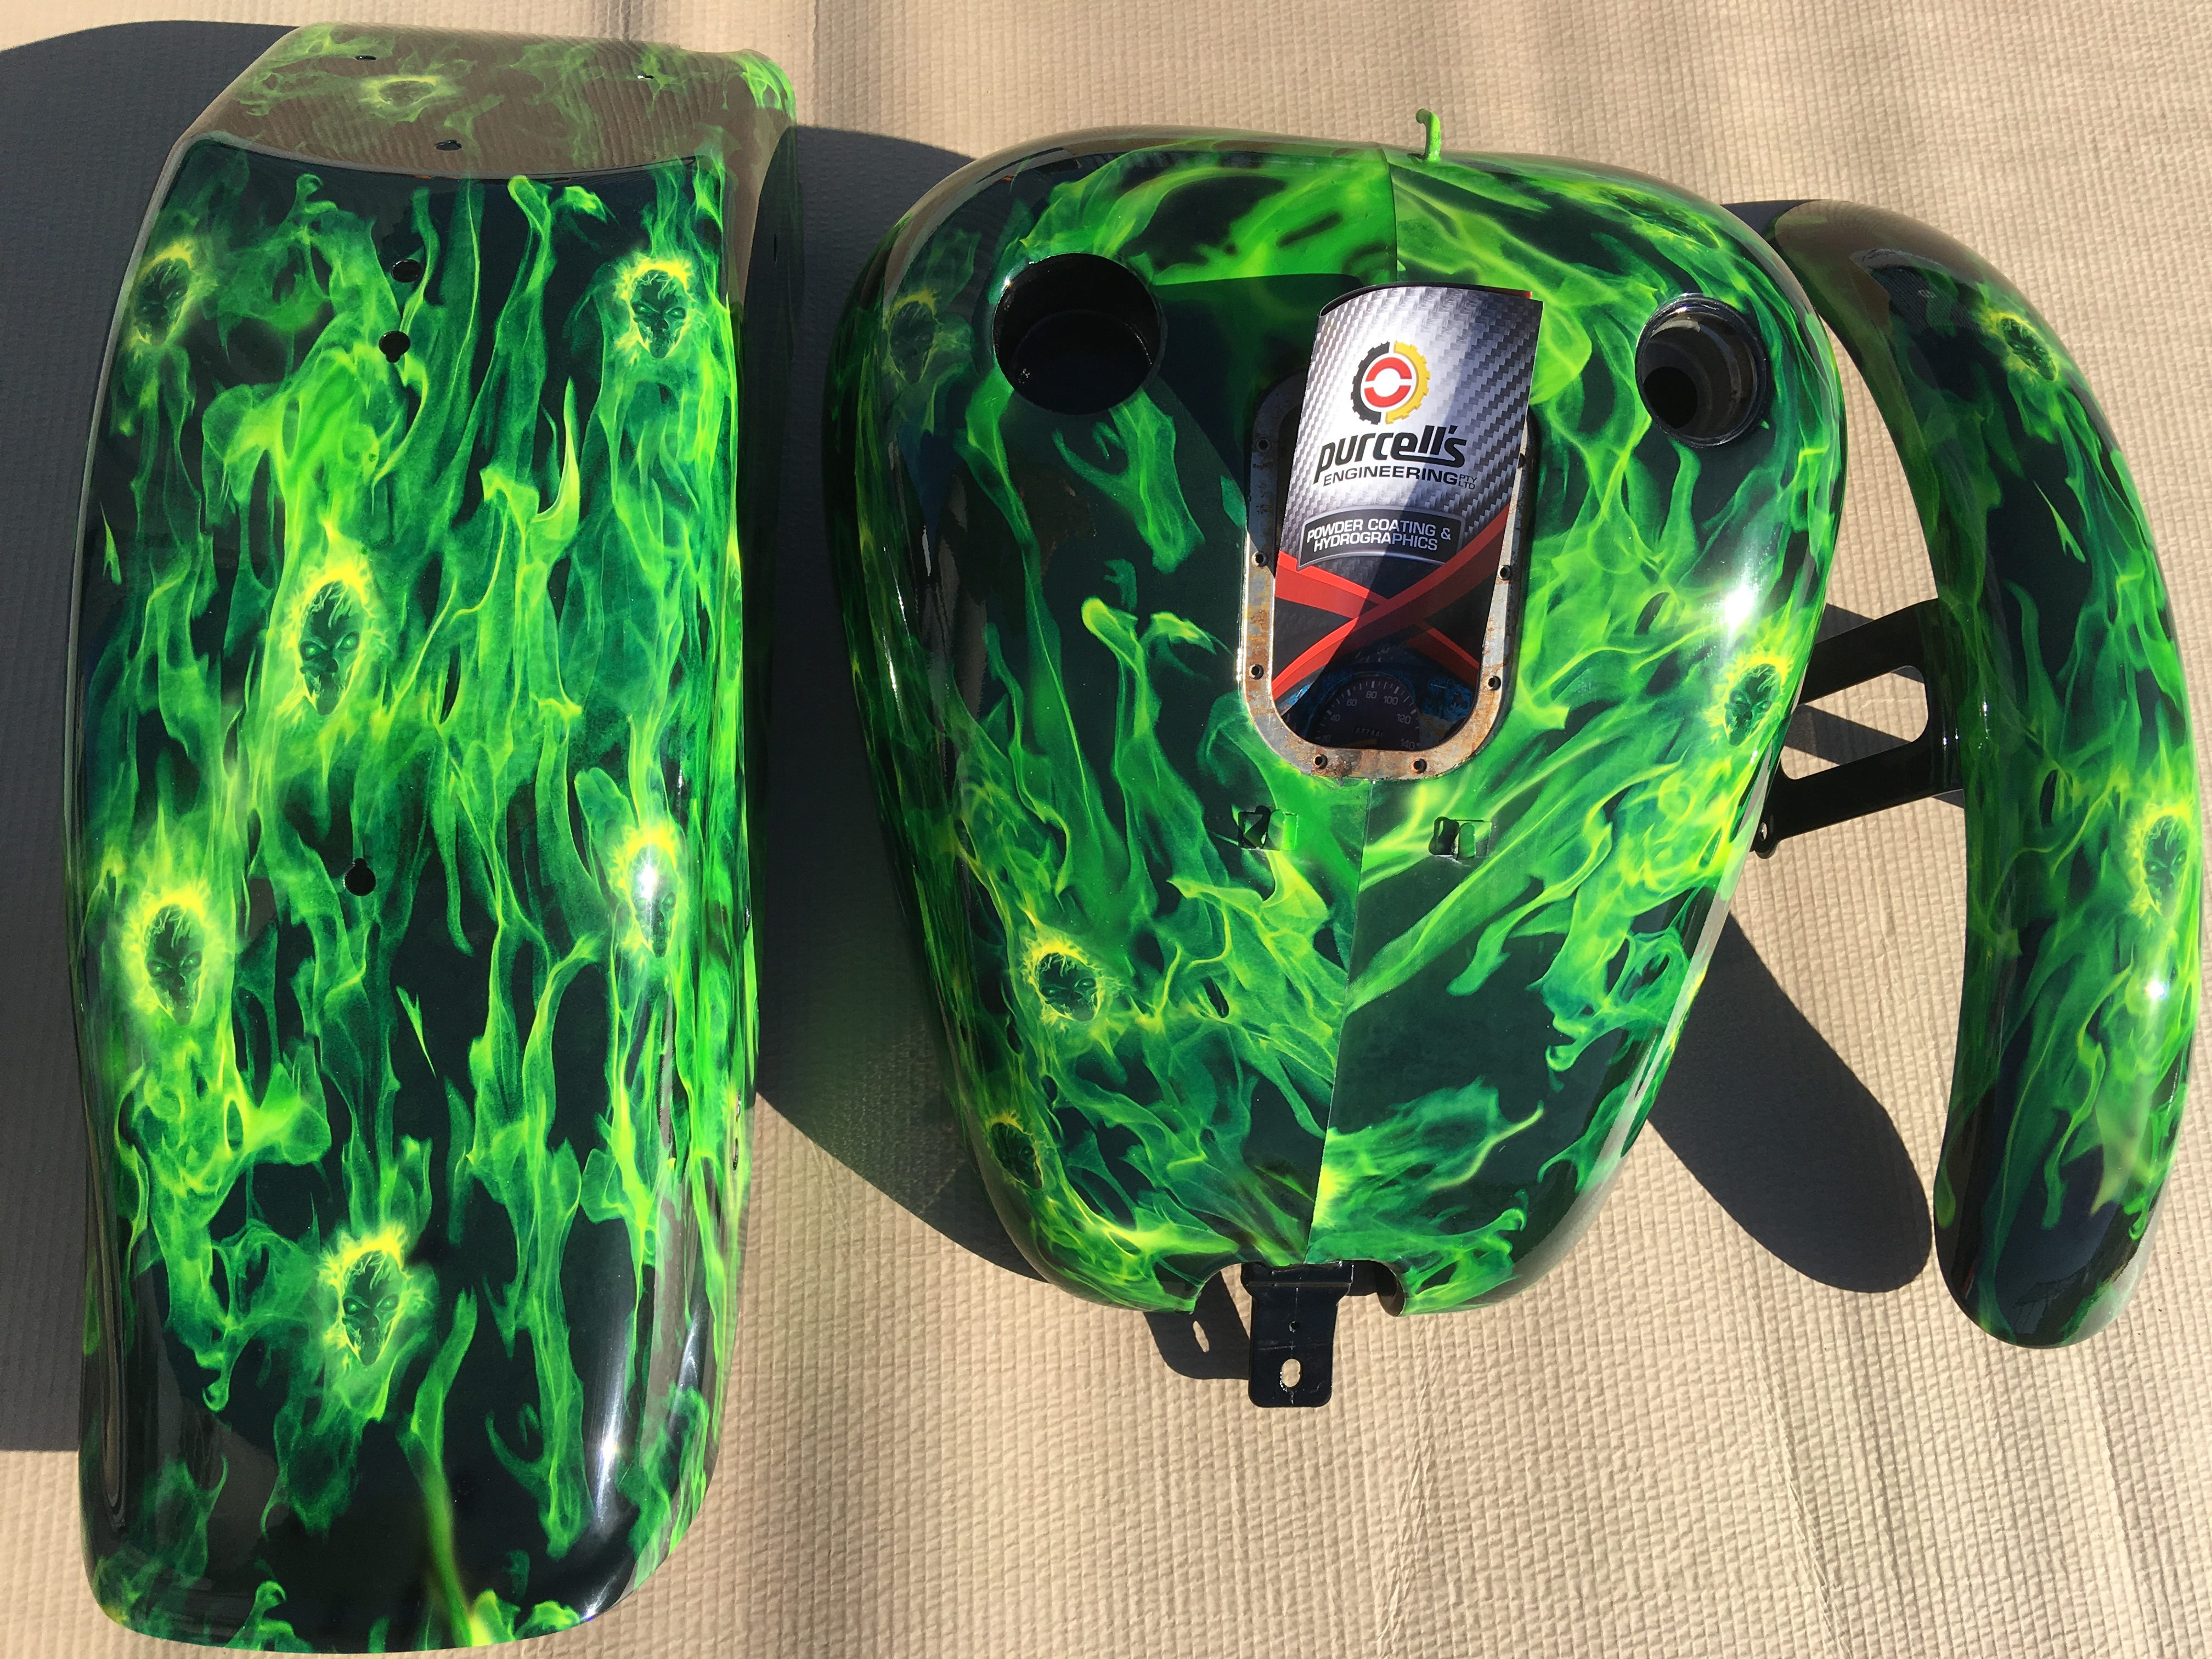 Harley Parts - Green Skulls & Flames